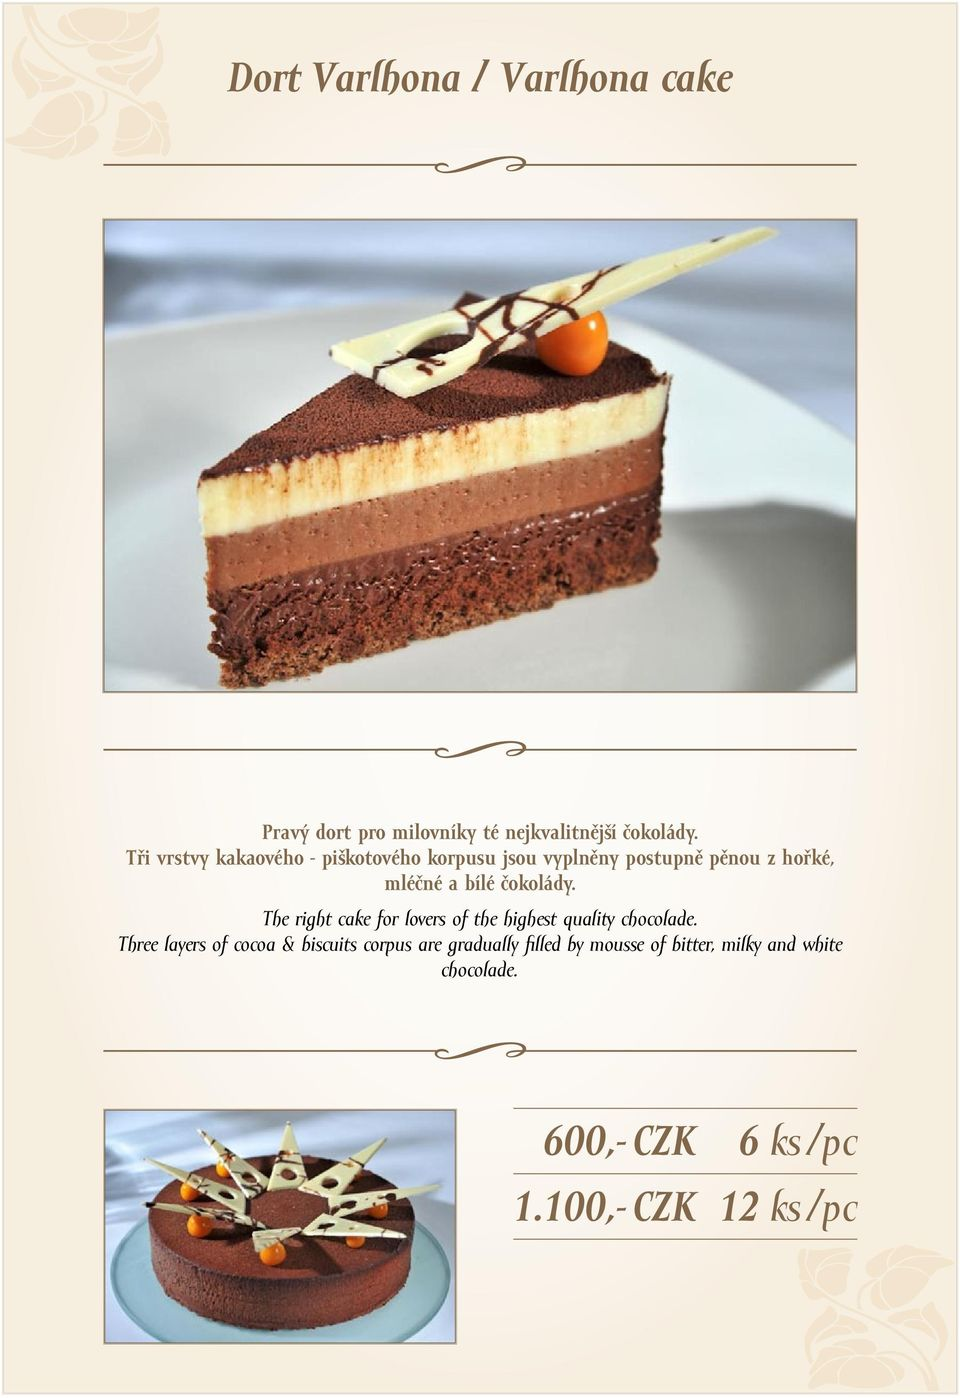 čokolády. The right cake for lovers of the highest quality chocolade.